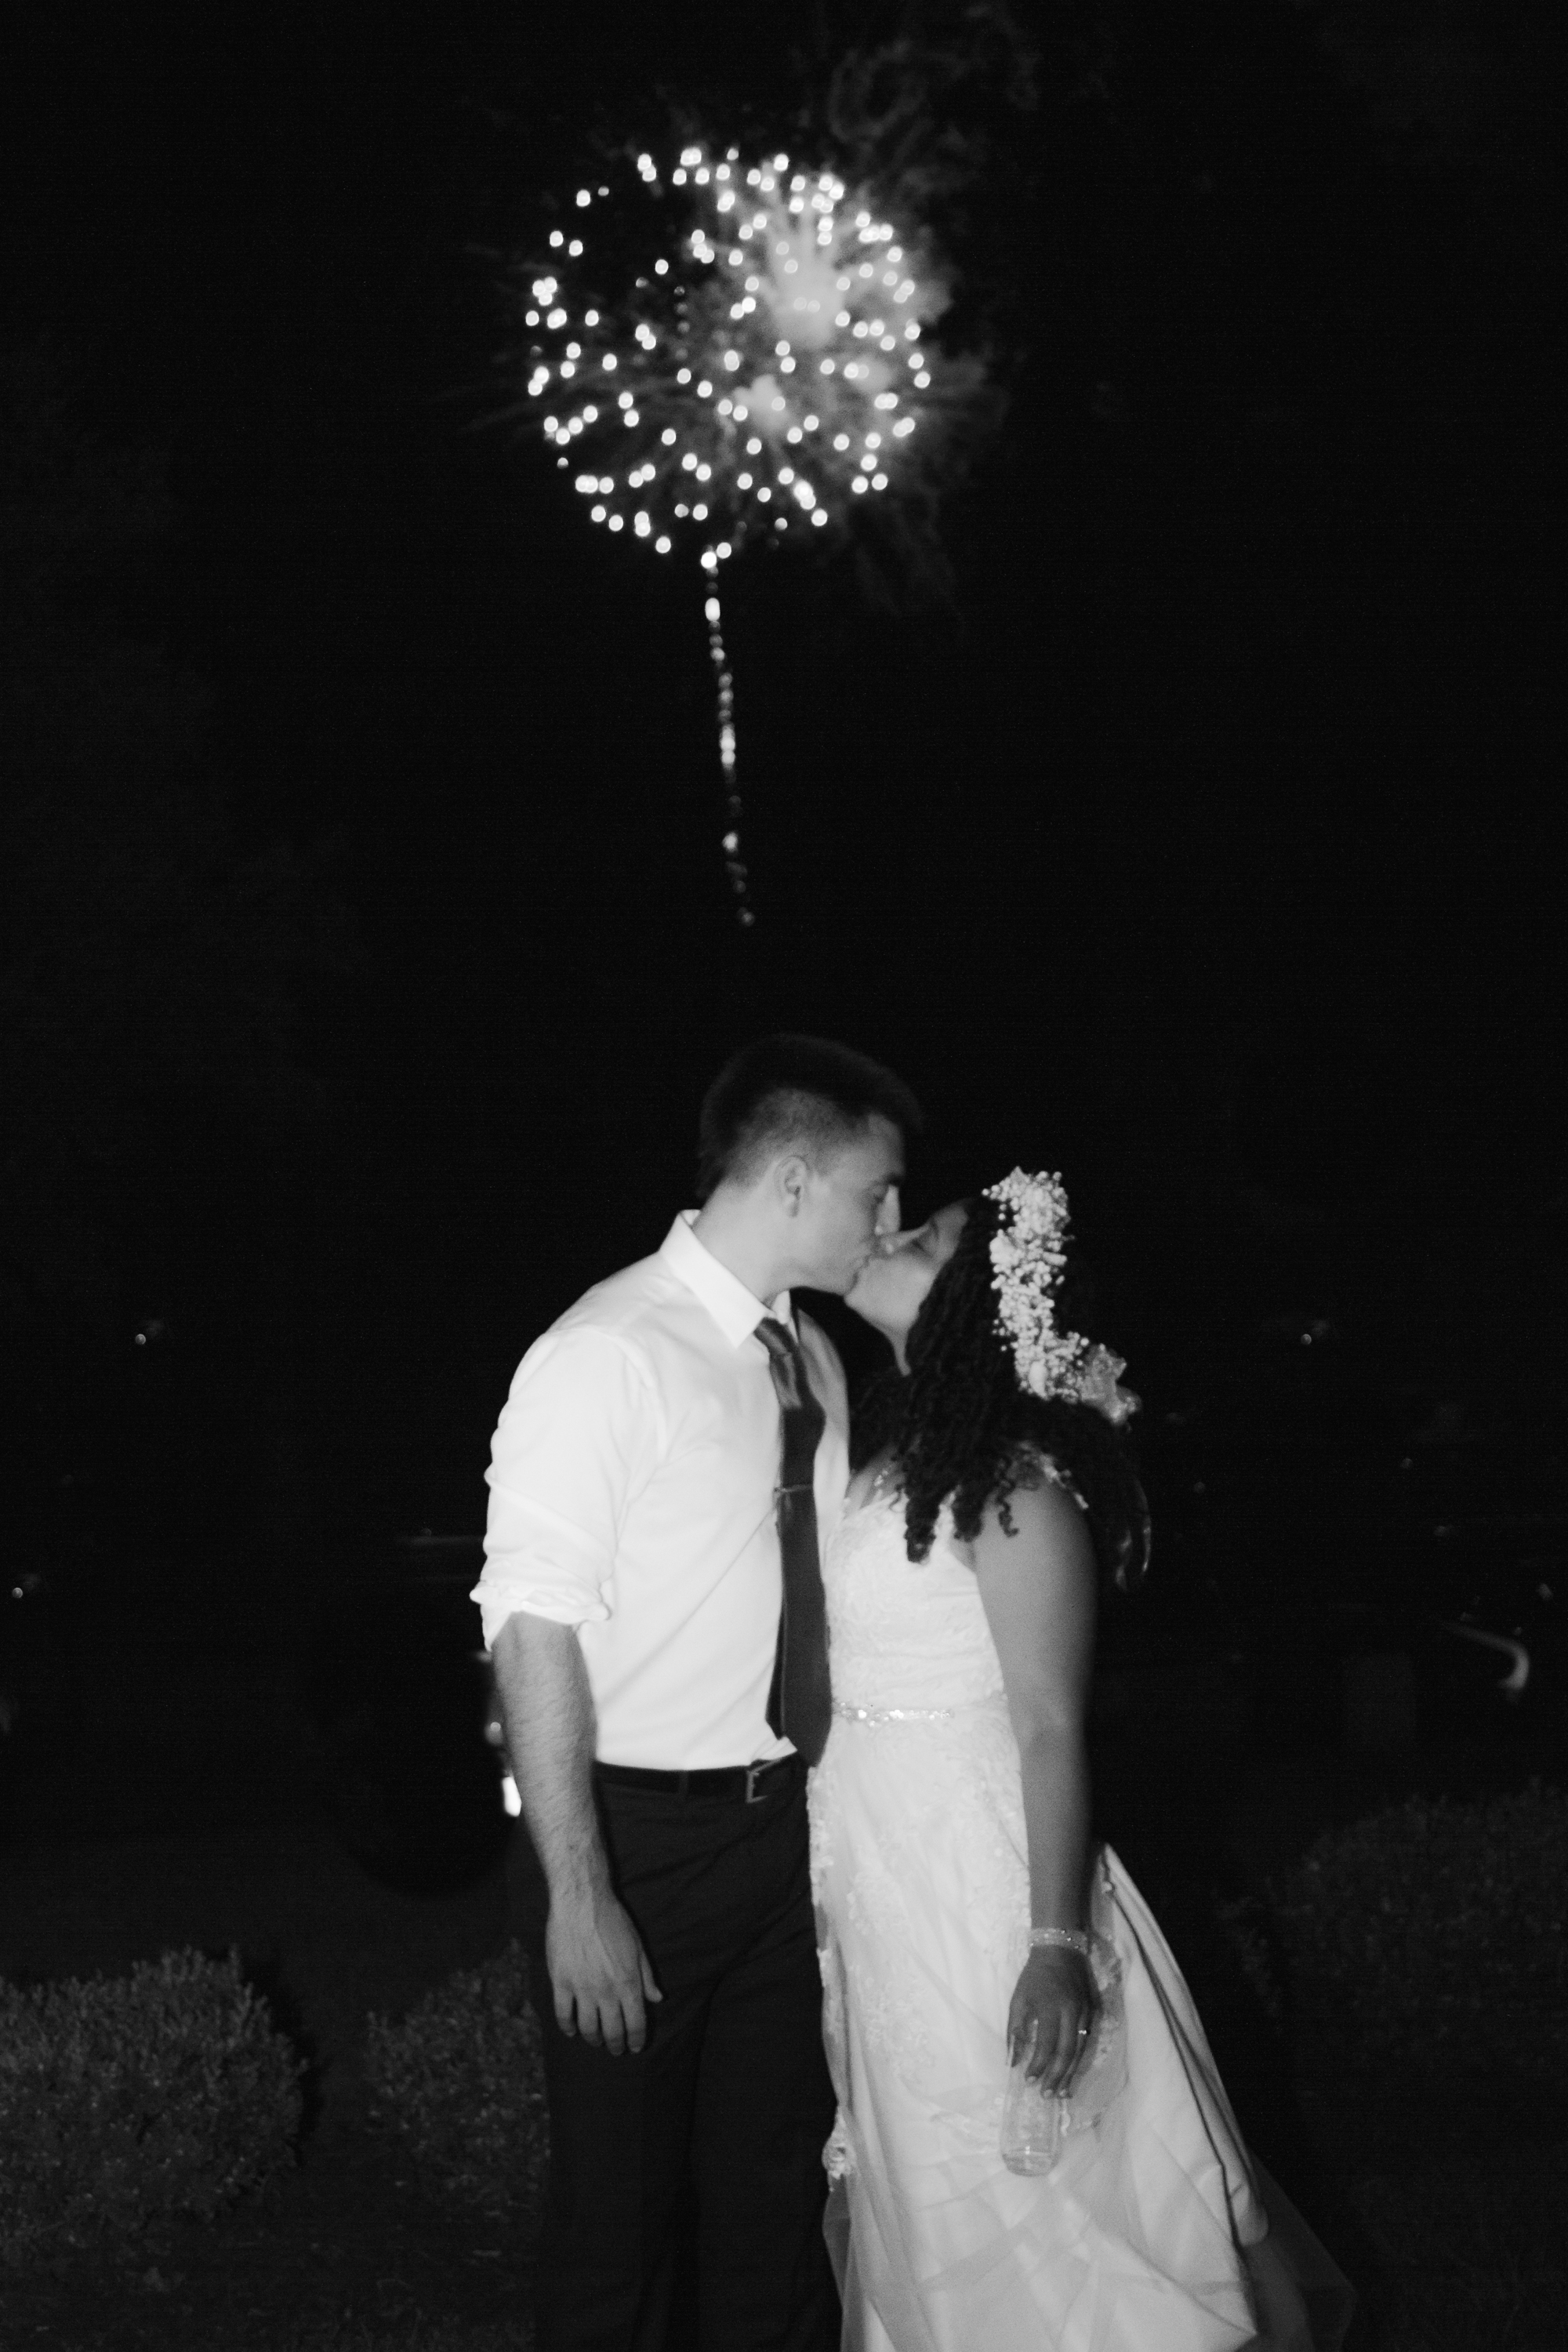 Cathy and Chris Wedding Photos - Black and White - by Brittany Castillo Meadow Portraits (21 of 21).jpg